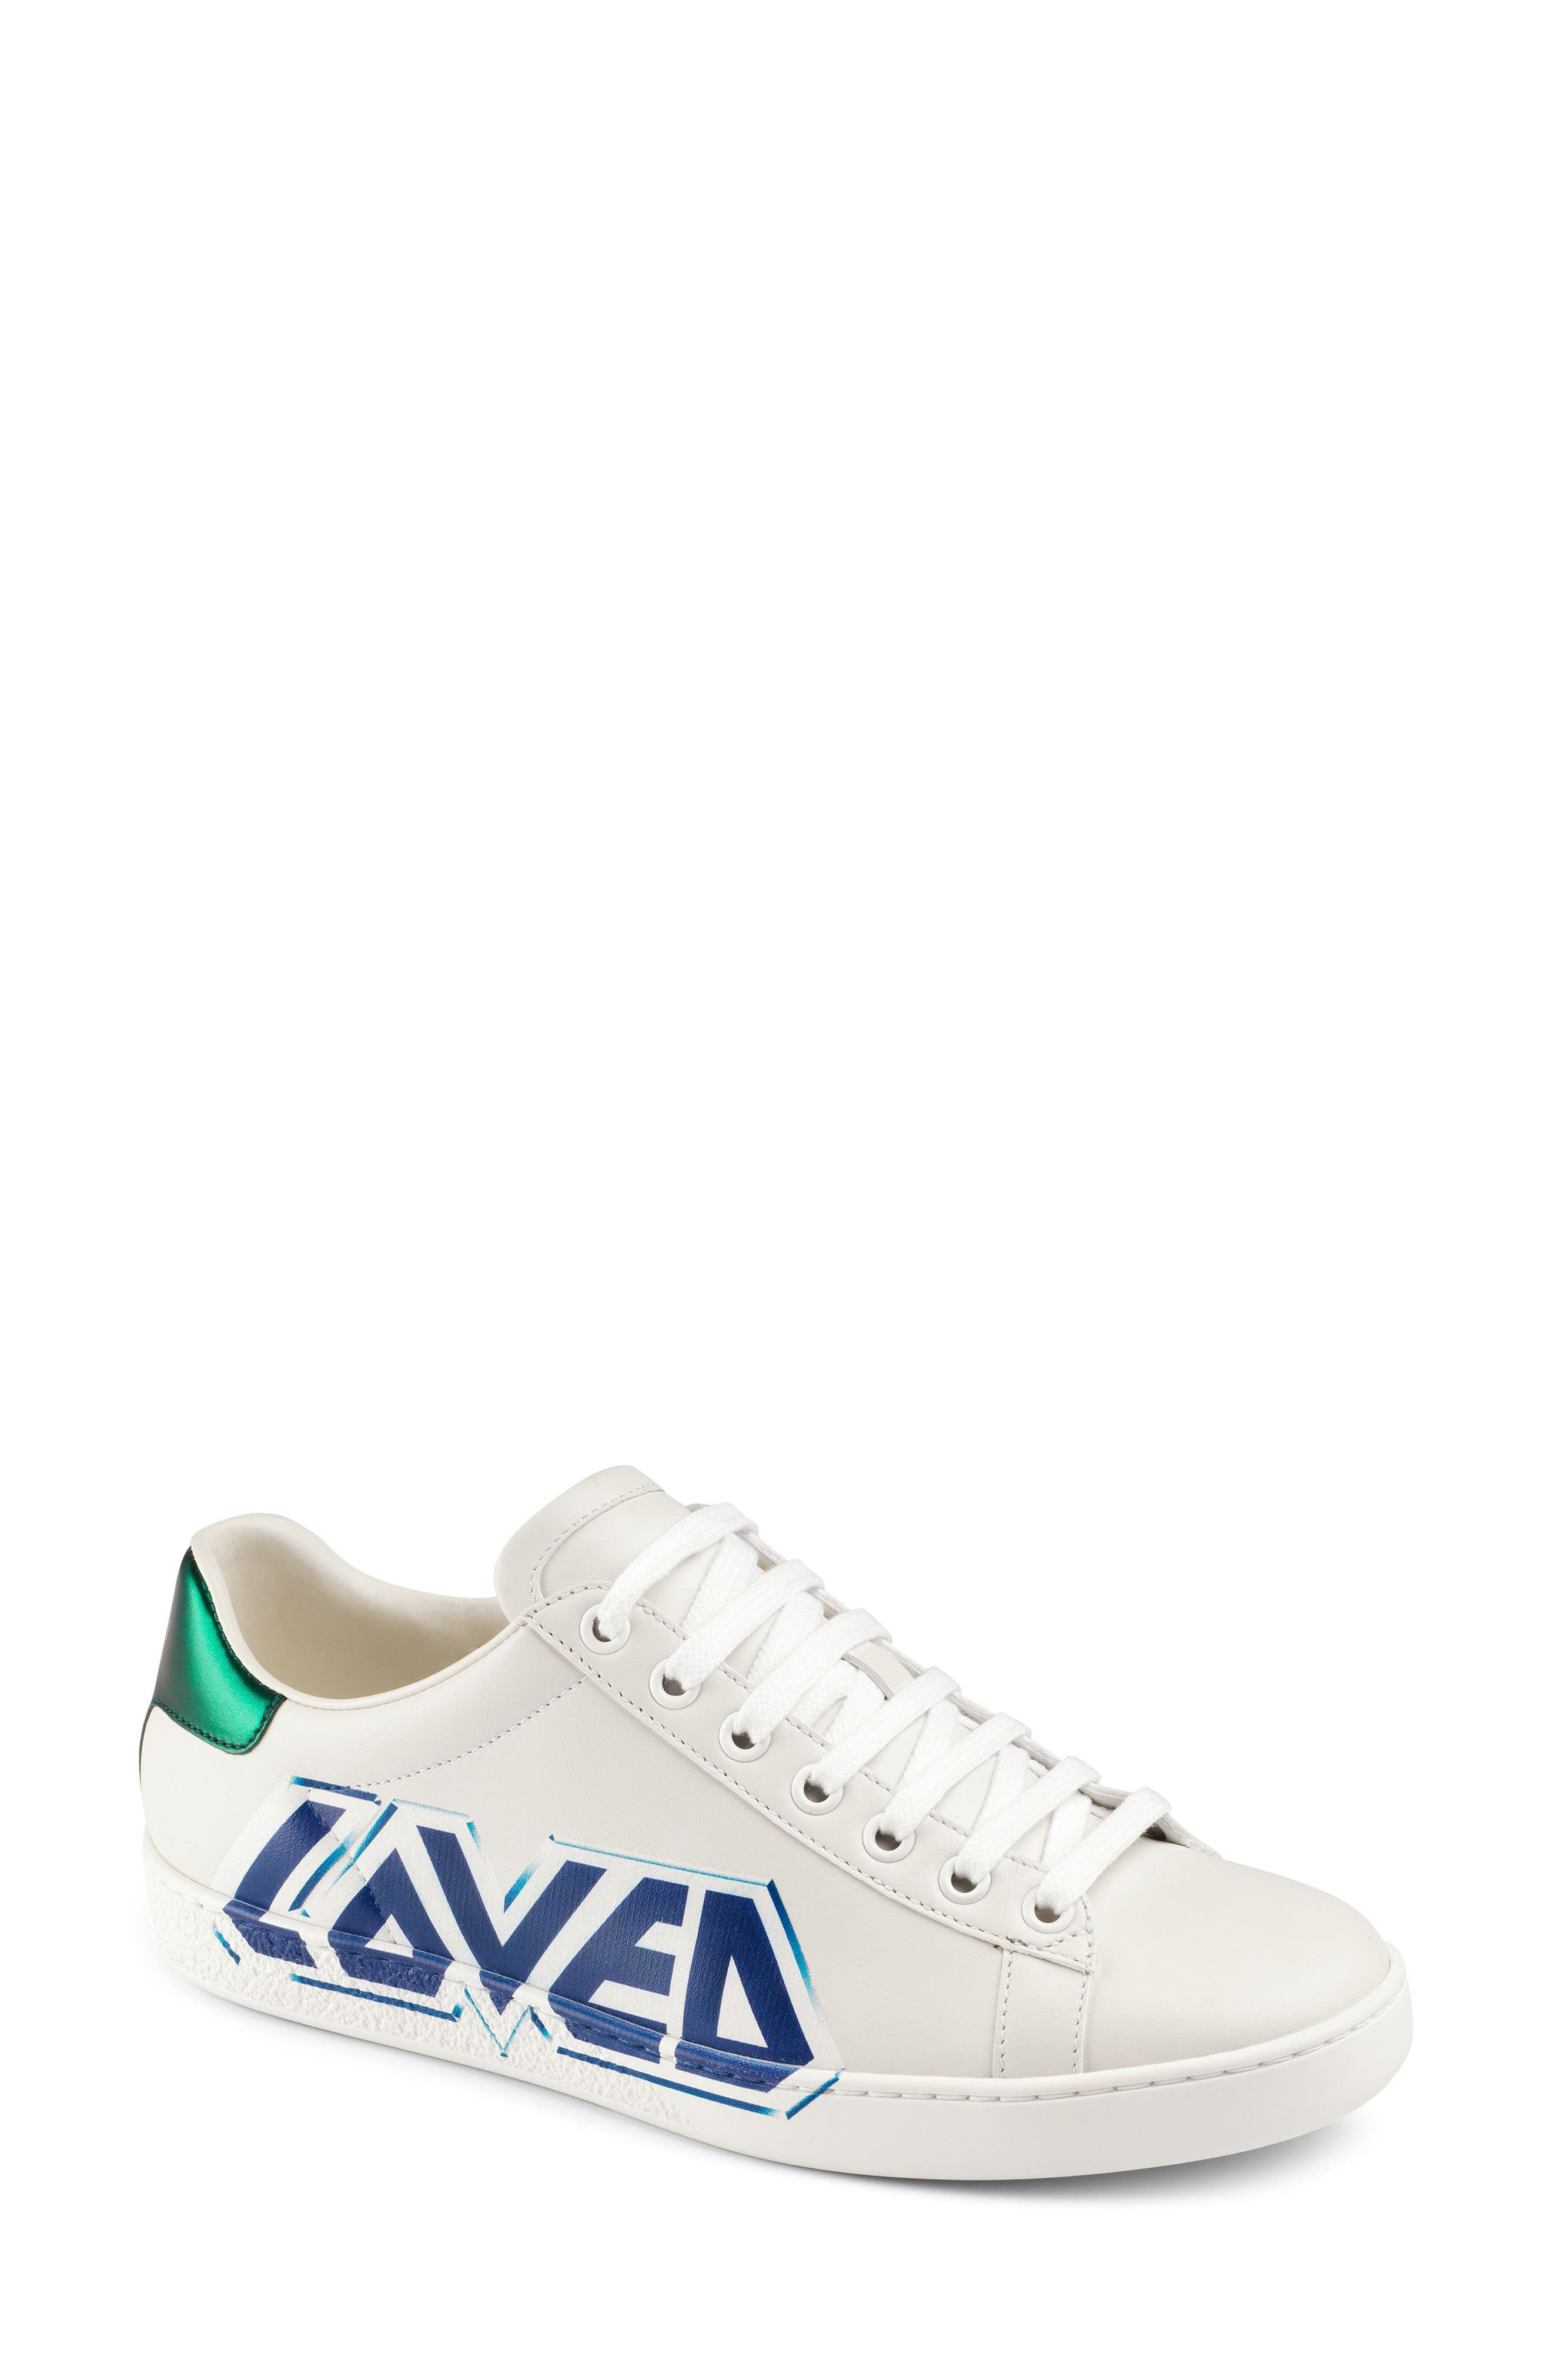 GUCCI,                             New Ace Loved Sneaker,                             Main thumbnail 1, color,                             WHITE